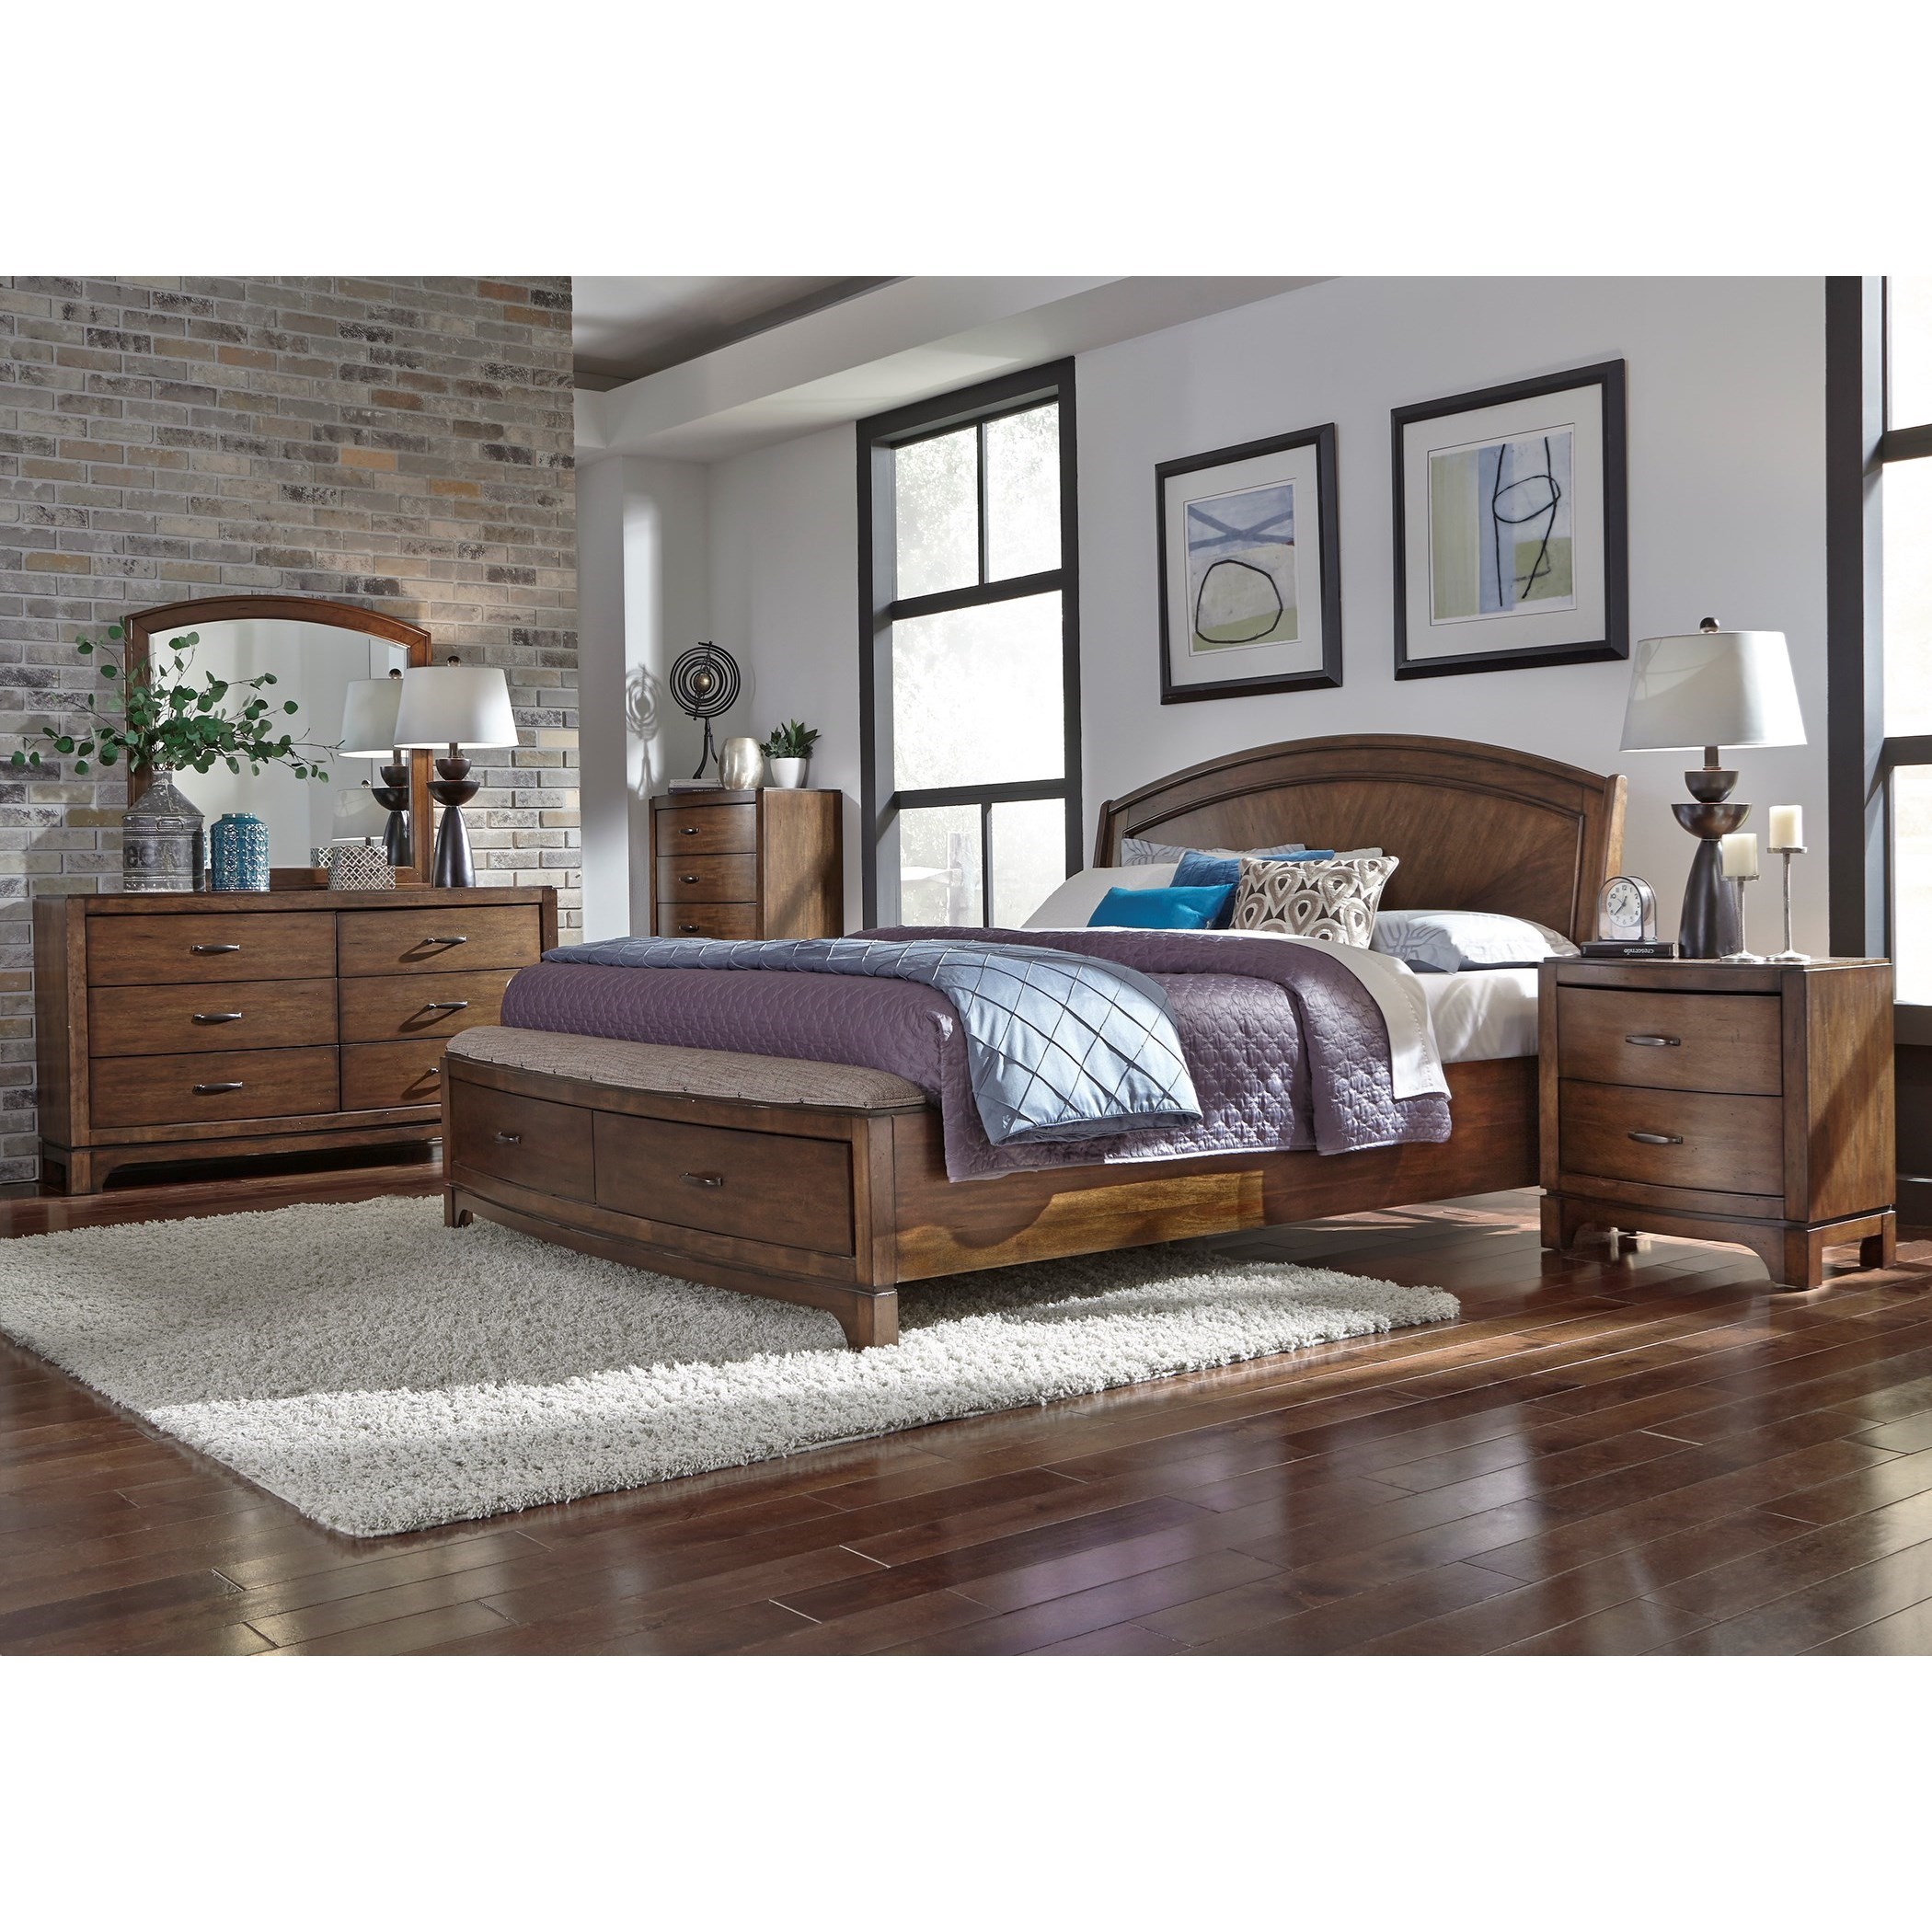 liberty furniture avalon iii queen bedroom group john v